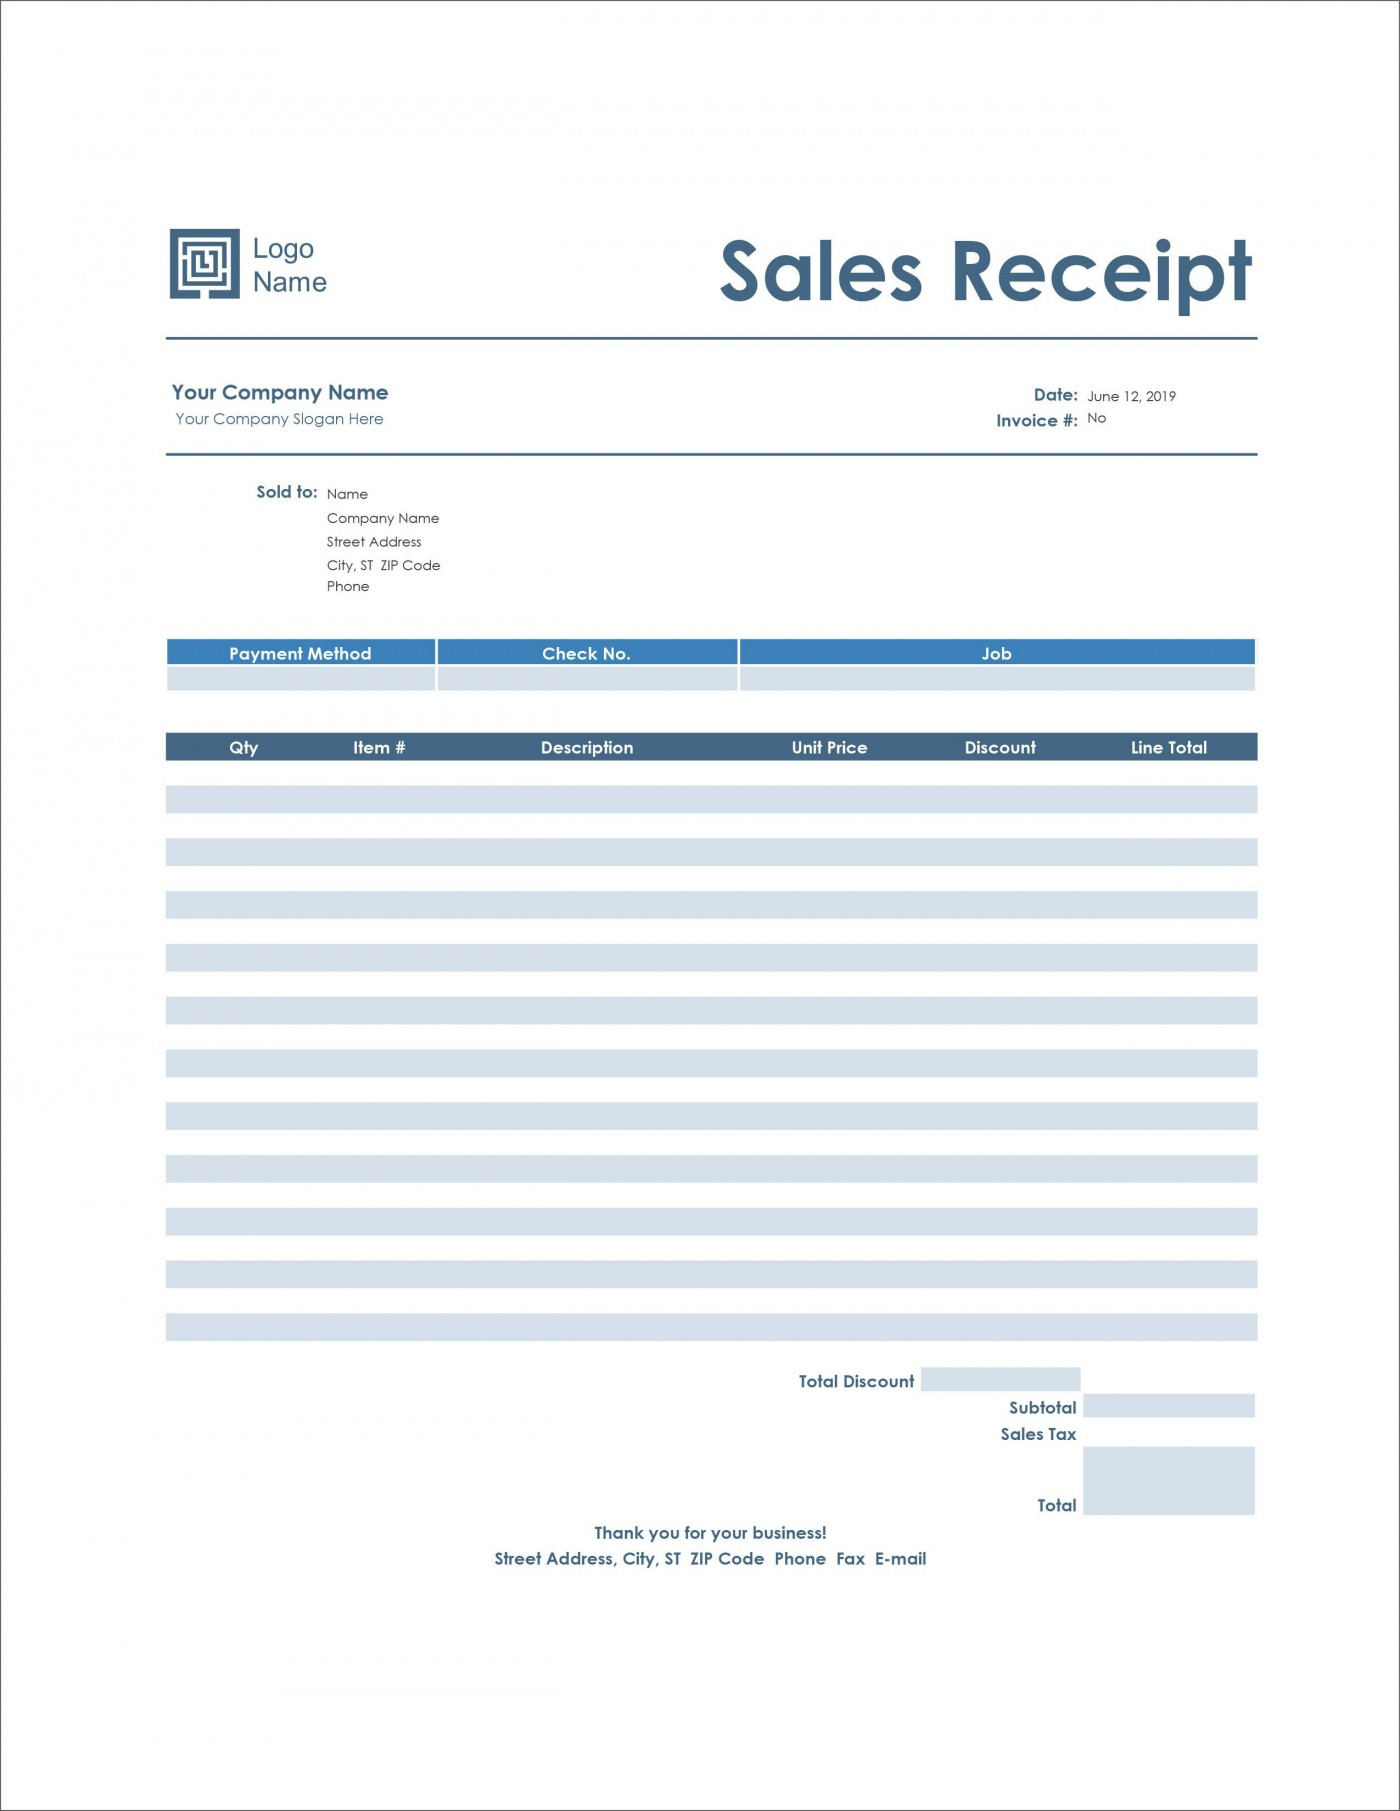 006 Staggering Receipt Template Microsoft Word Design  Payment Sample Invoice1400